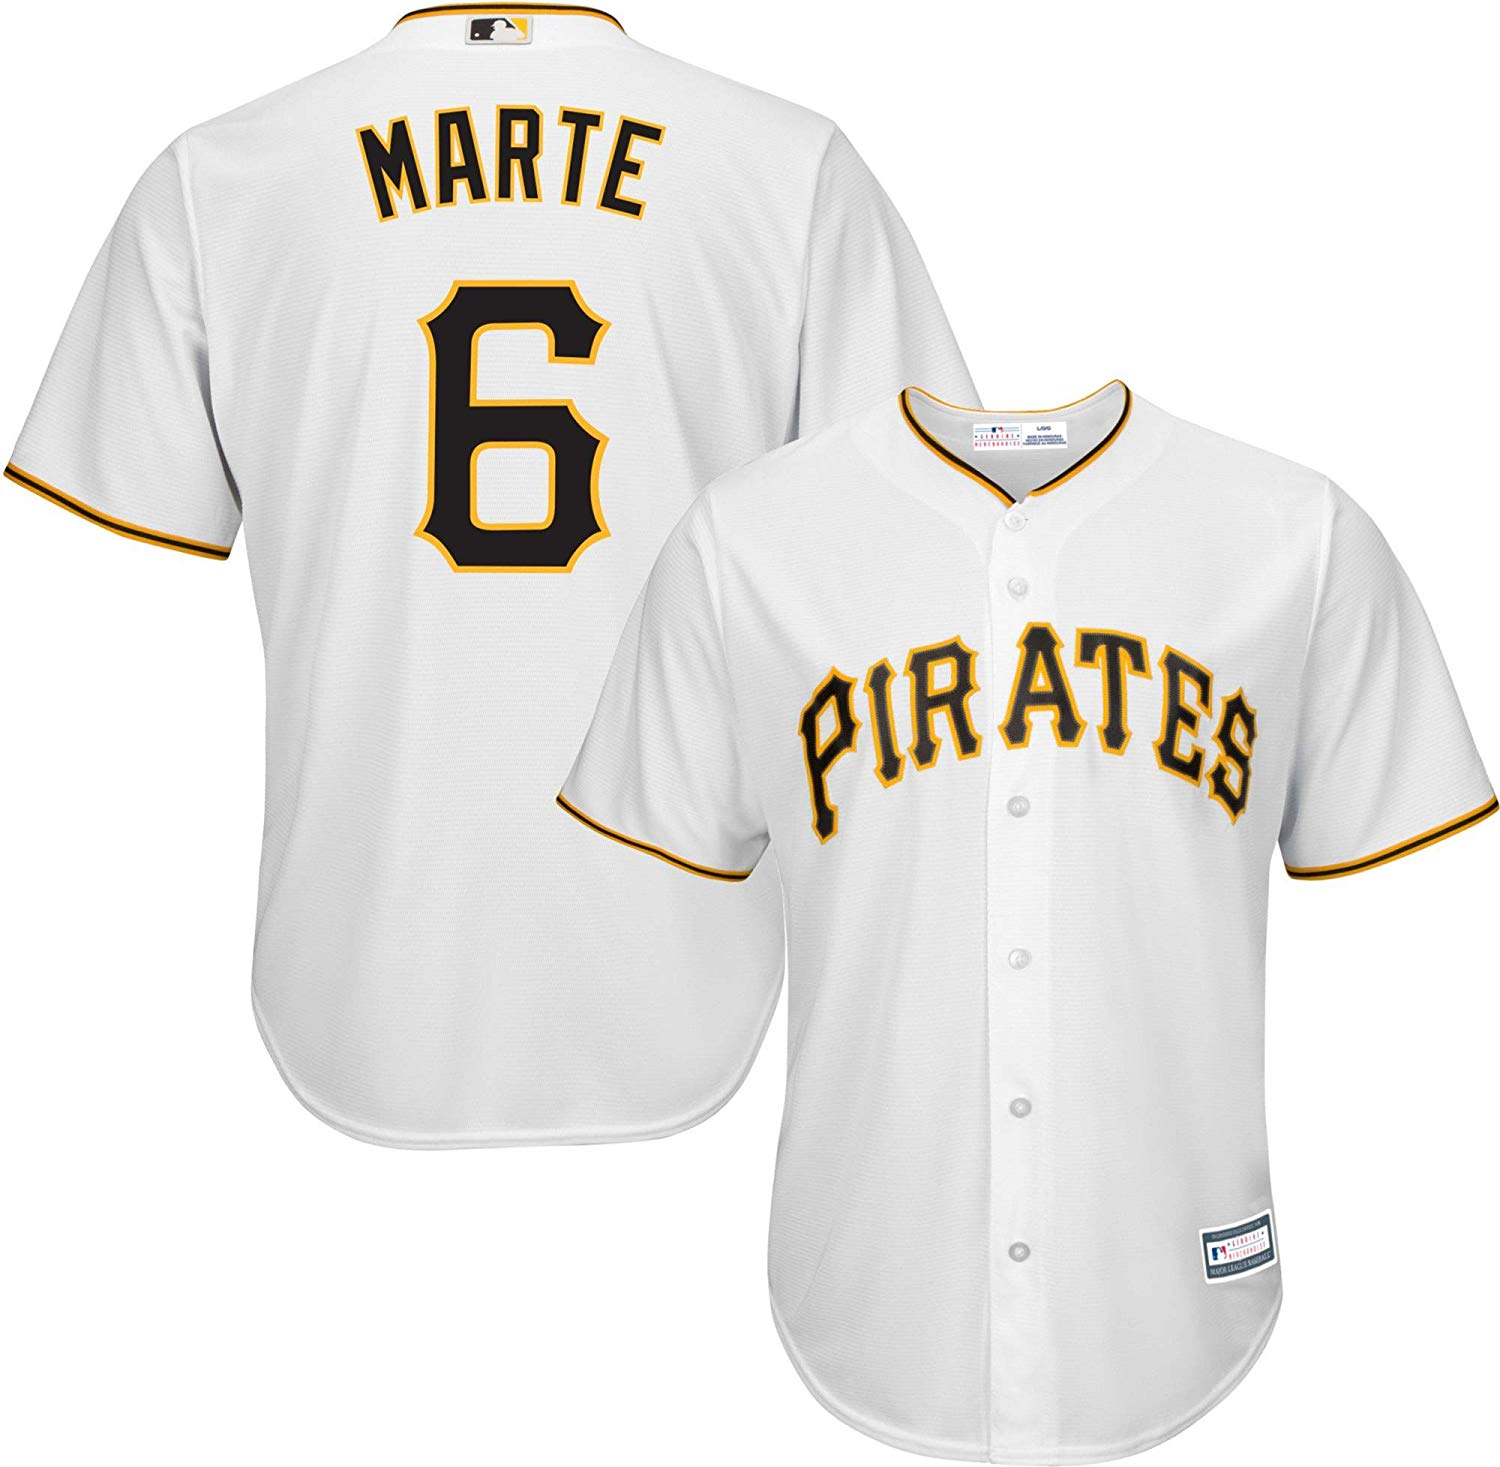 Outerstuff Starling Marte Pittsburgh Pirates White Youth Cool Base Home Replica Jersey